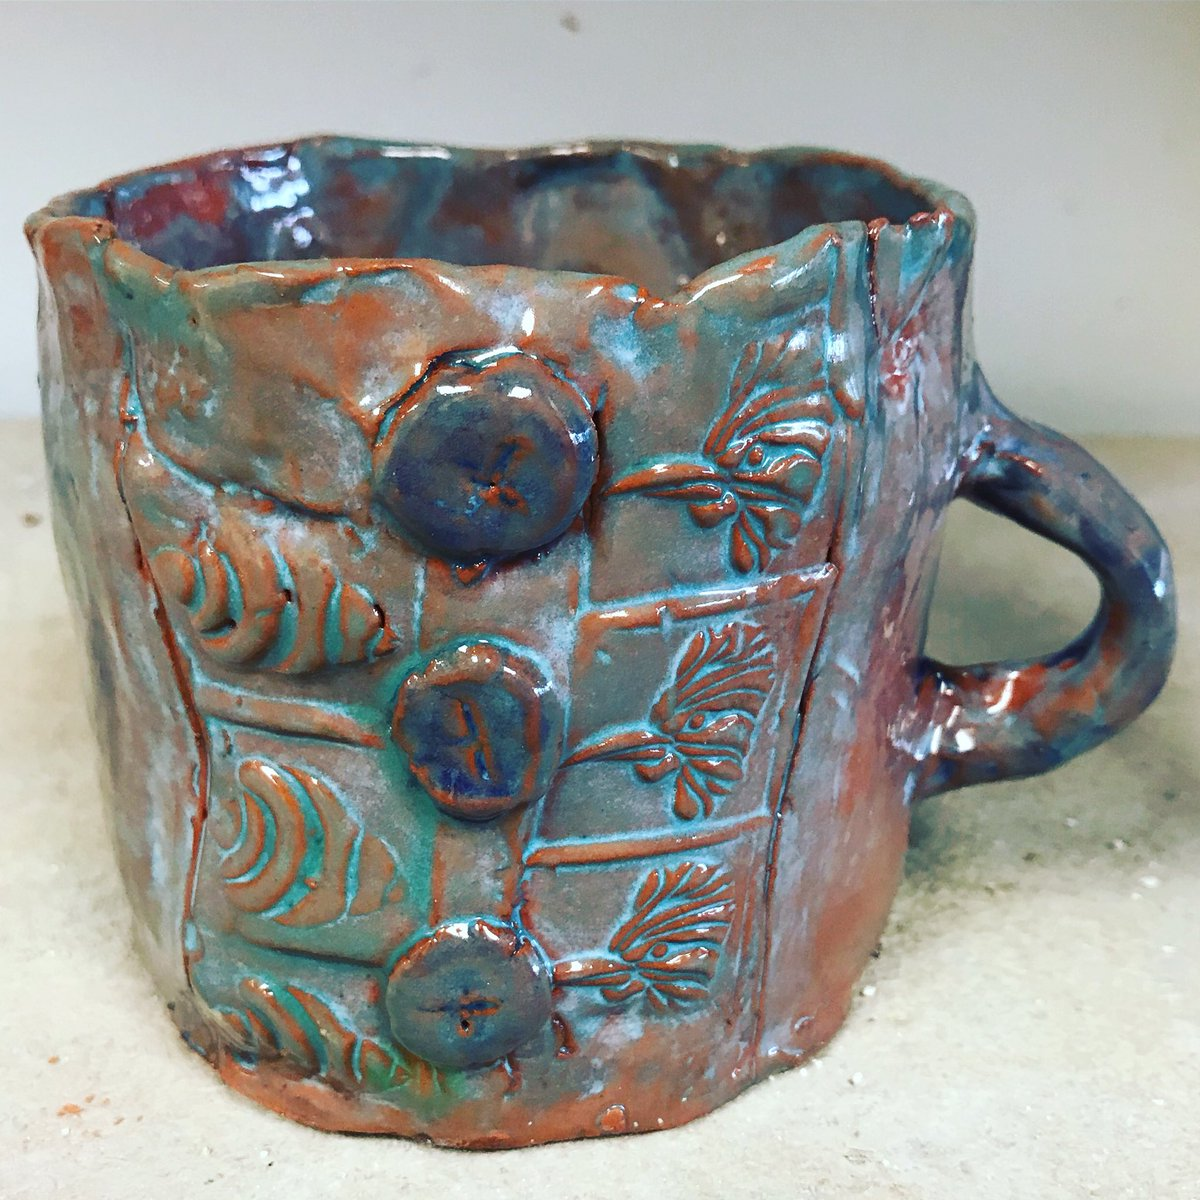 Colorfulpalettes On Twitter Textured Mug On Red Clay Made By A 3rd Grader Clayprojects Ceramicvase Middleschoolart Clay Art Artroom Artworks Artistsoninstagram Teachingartist Artprojectsforkids Artprojects Artlesson Artlessons